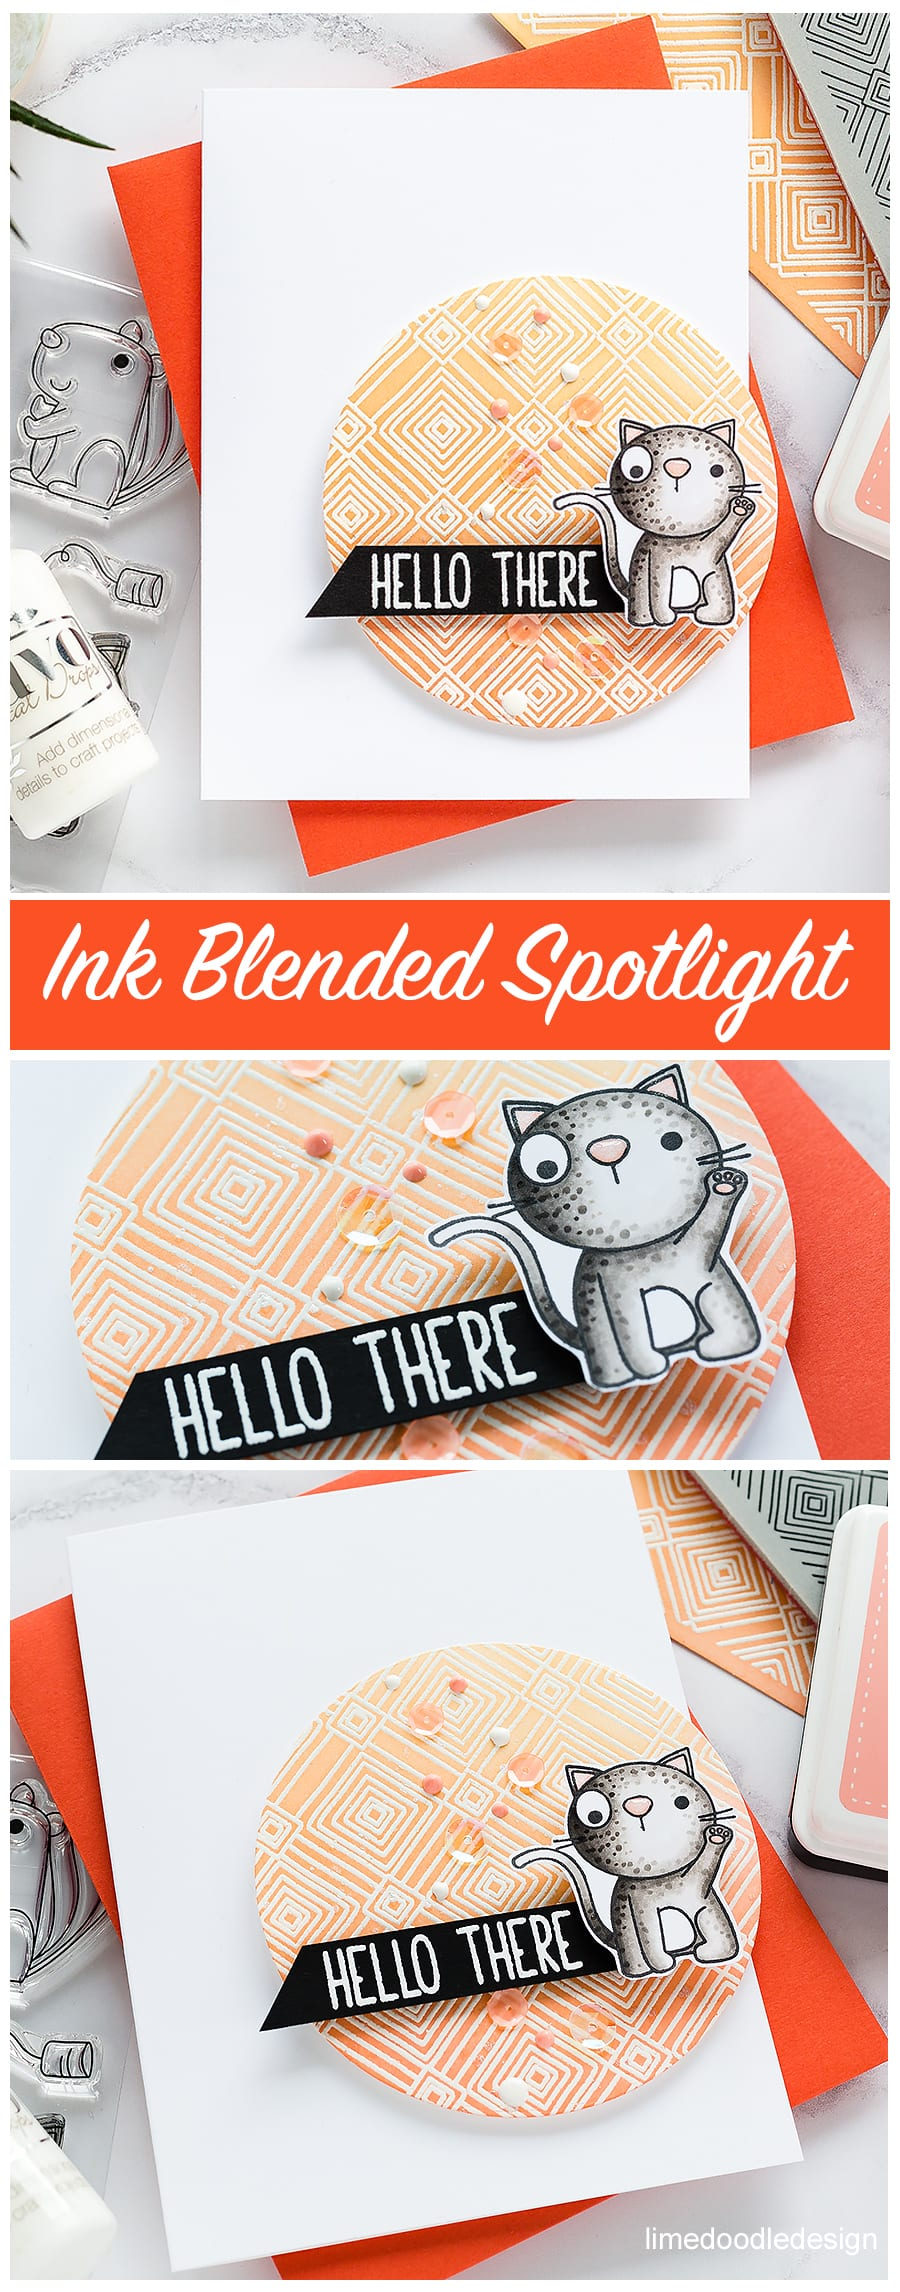 Spotlight ink blending, cute critters handmade cards by Debby Hughes using Simon Says Stamp products. Find out more here: https://limedoodledesign.com/2018/05/video-spotlight-ink-blended-backgrounds/